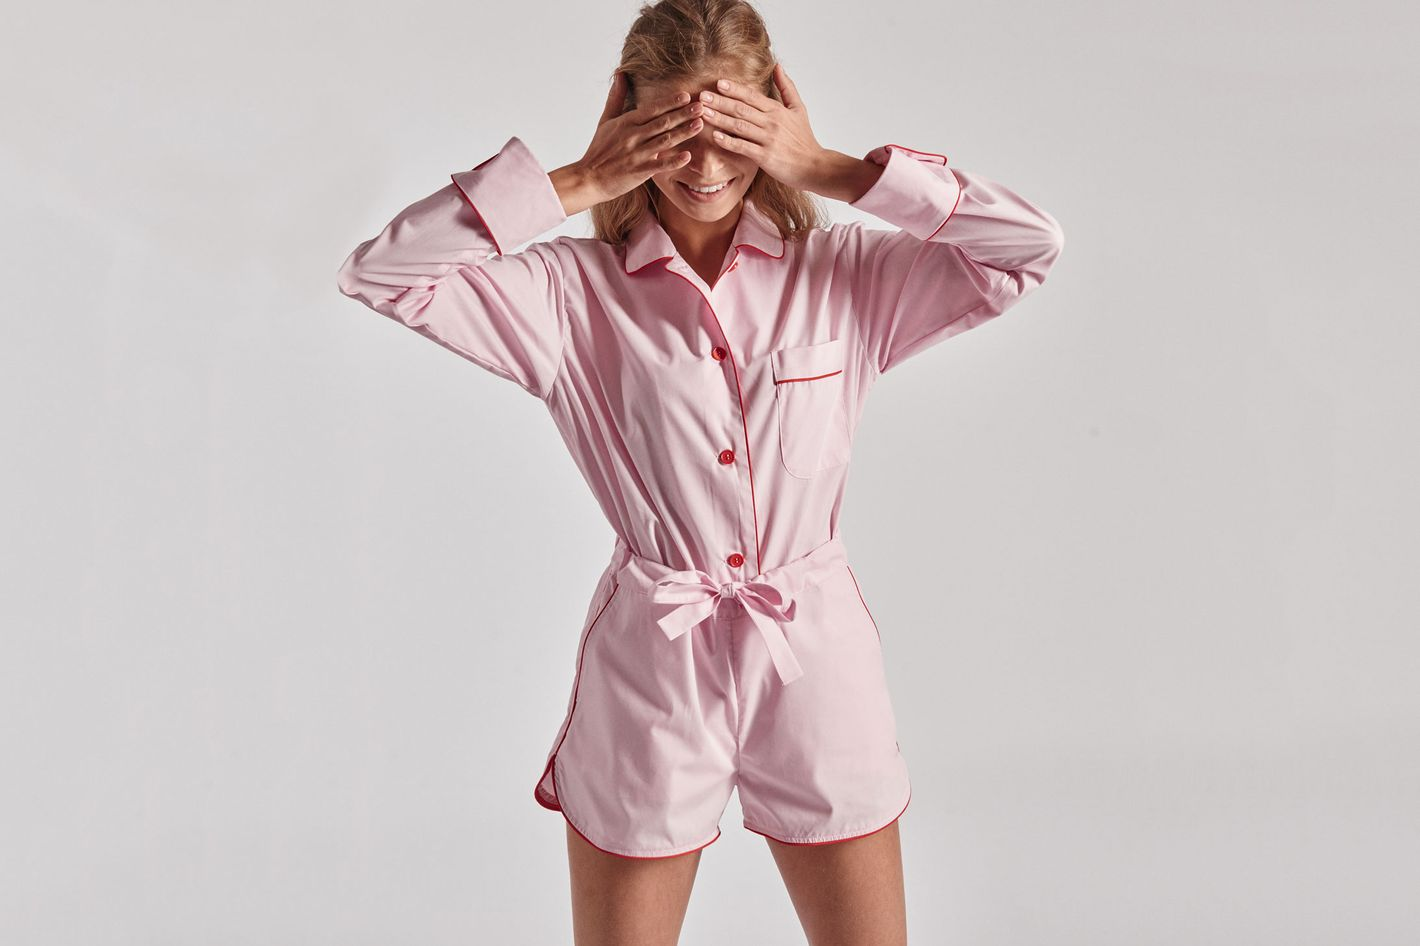 d6a2002a5d79 The 16 Best Pajamas for Women 2018